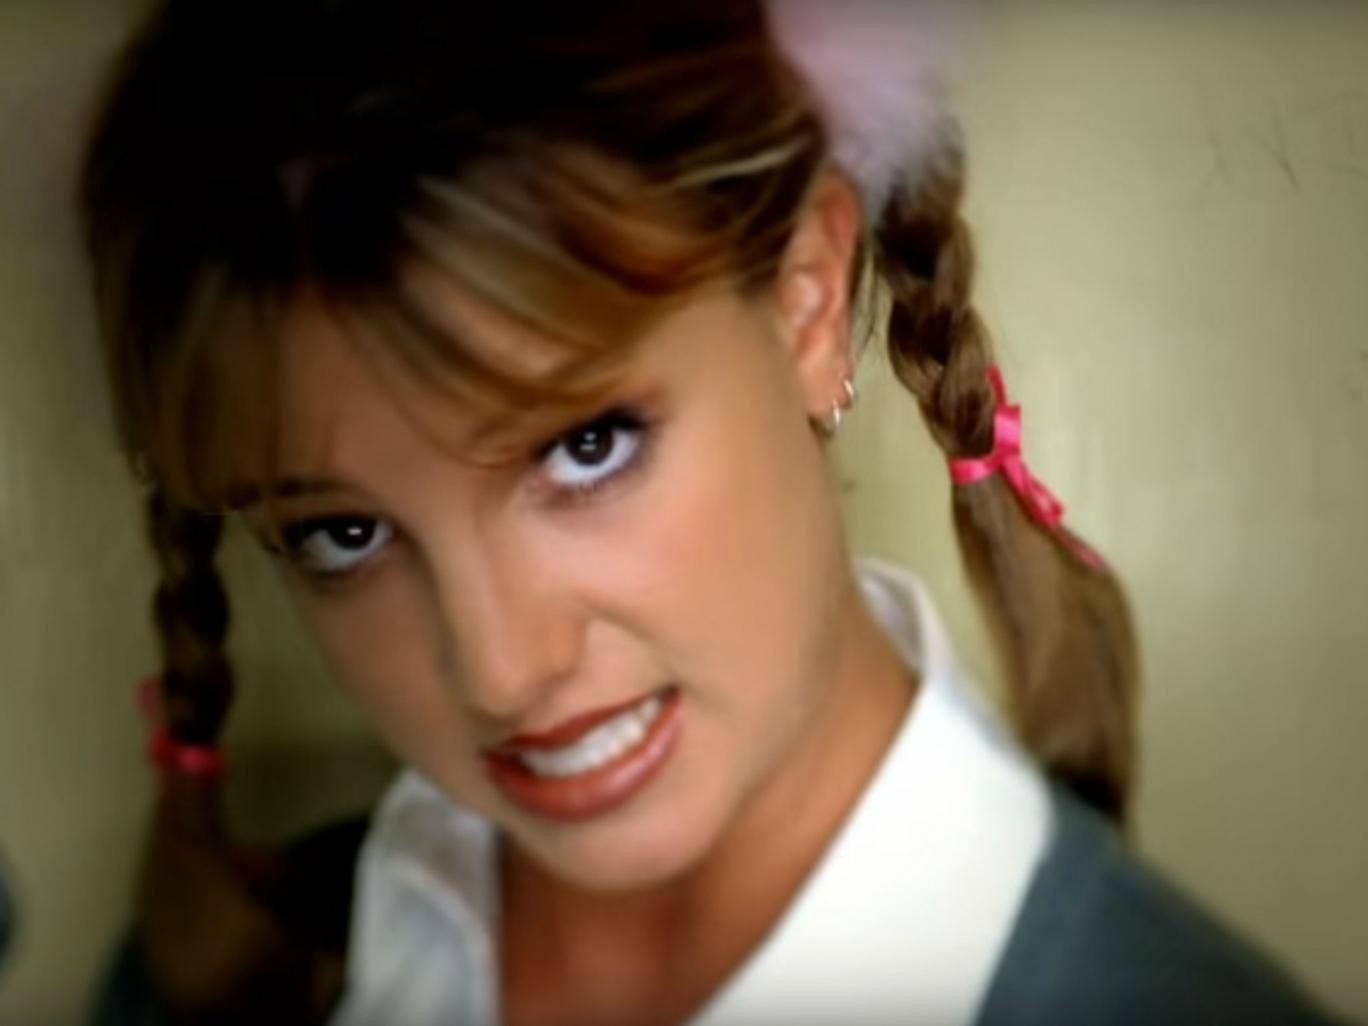 Britney Spears Baby One More Time The real meaning of Br...